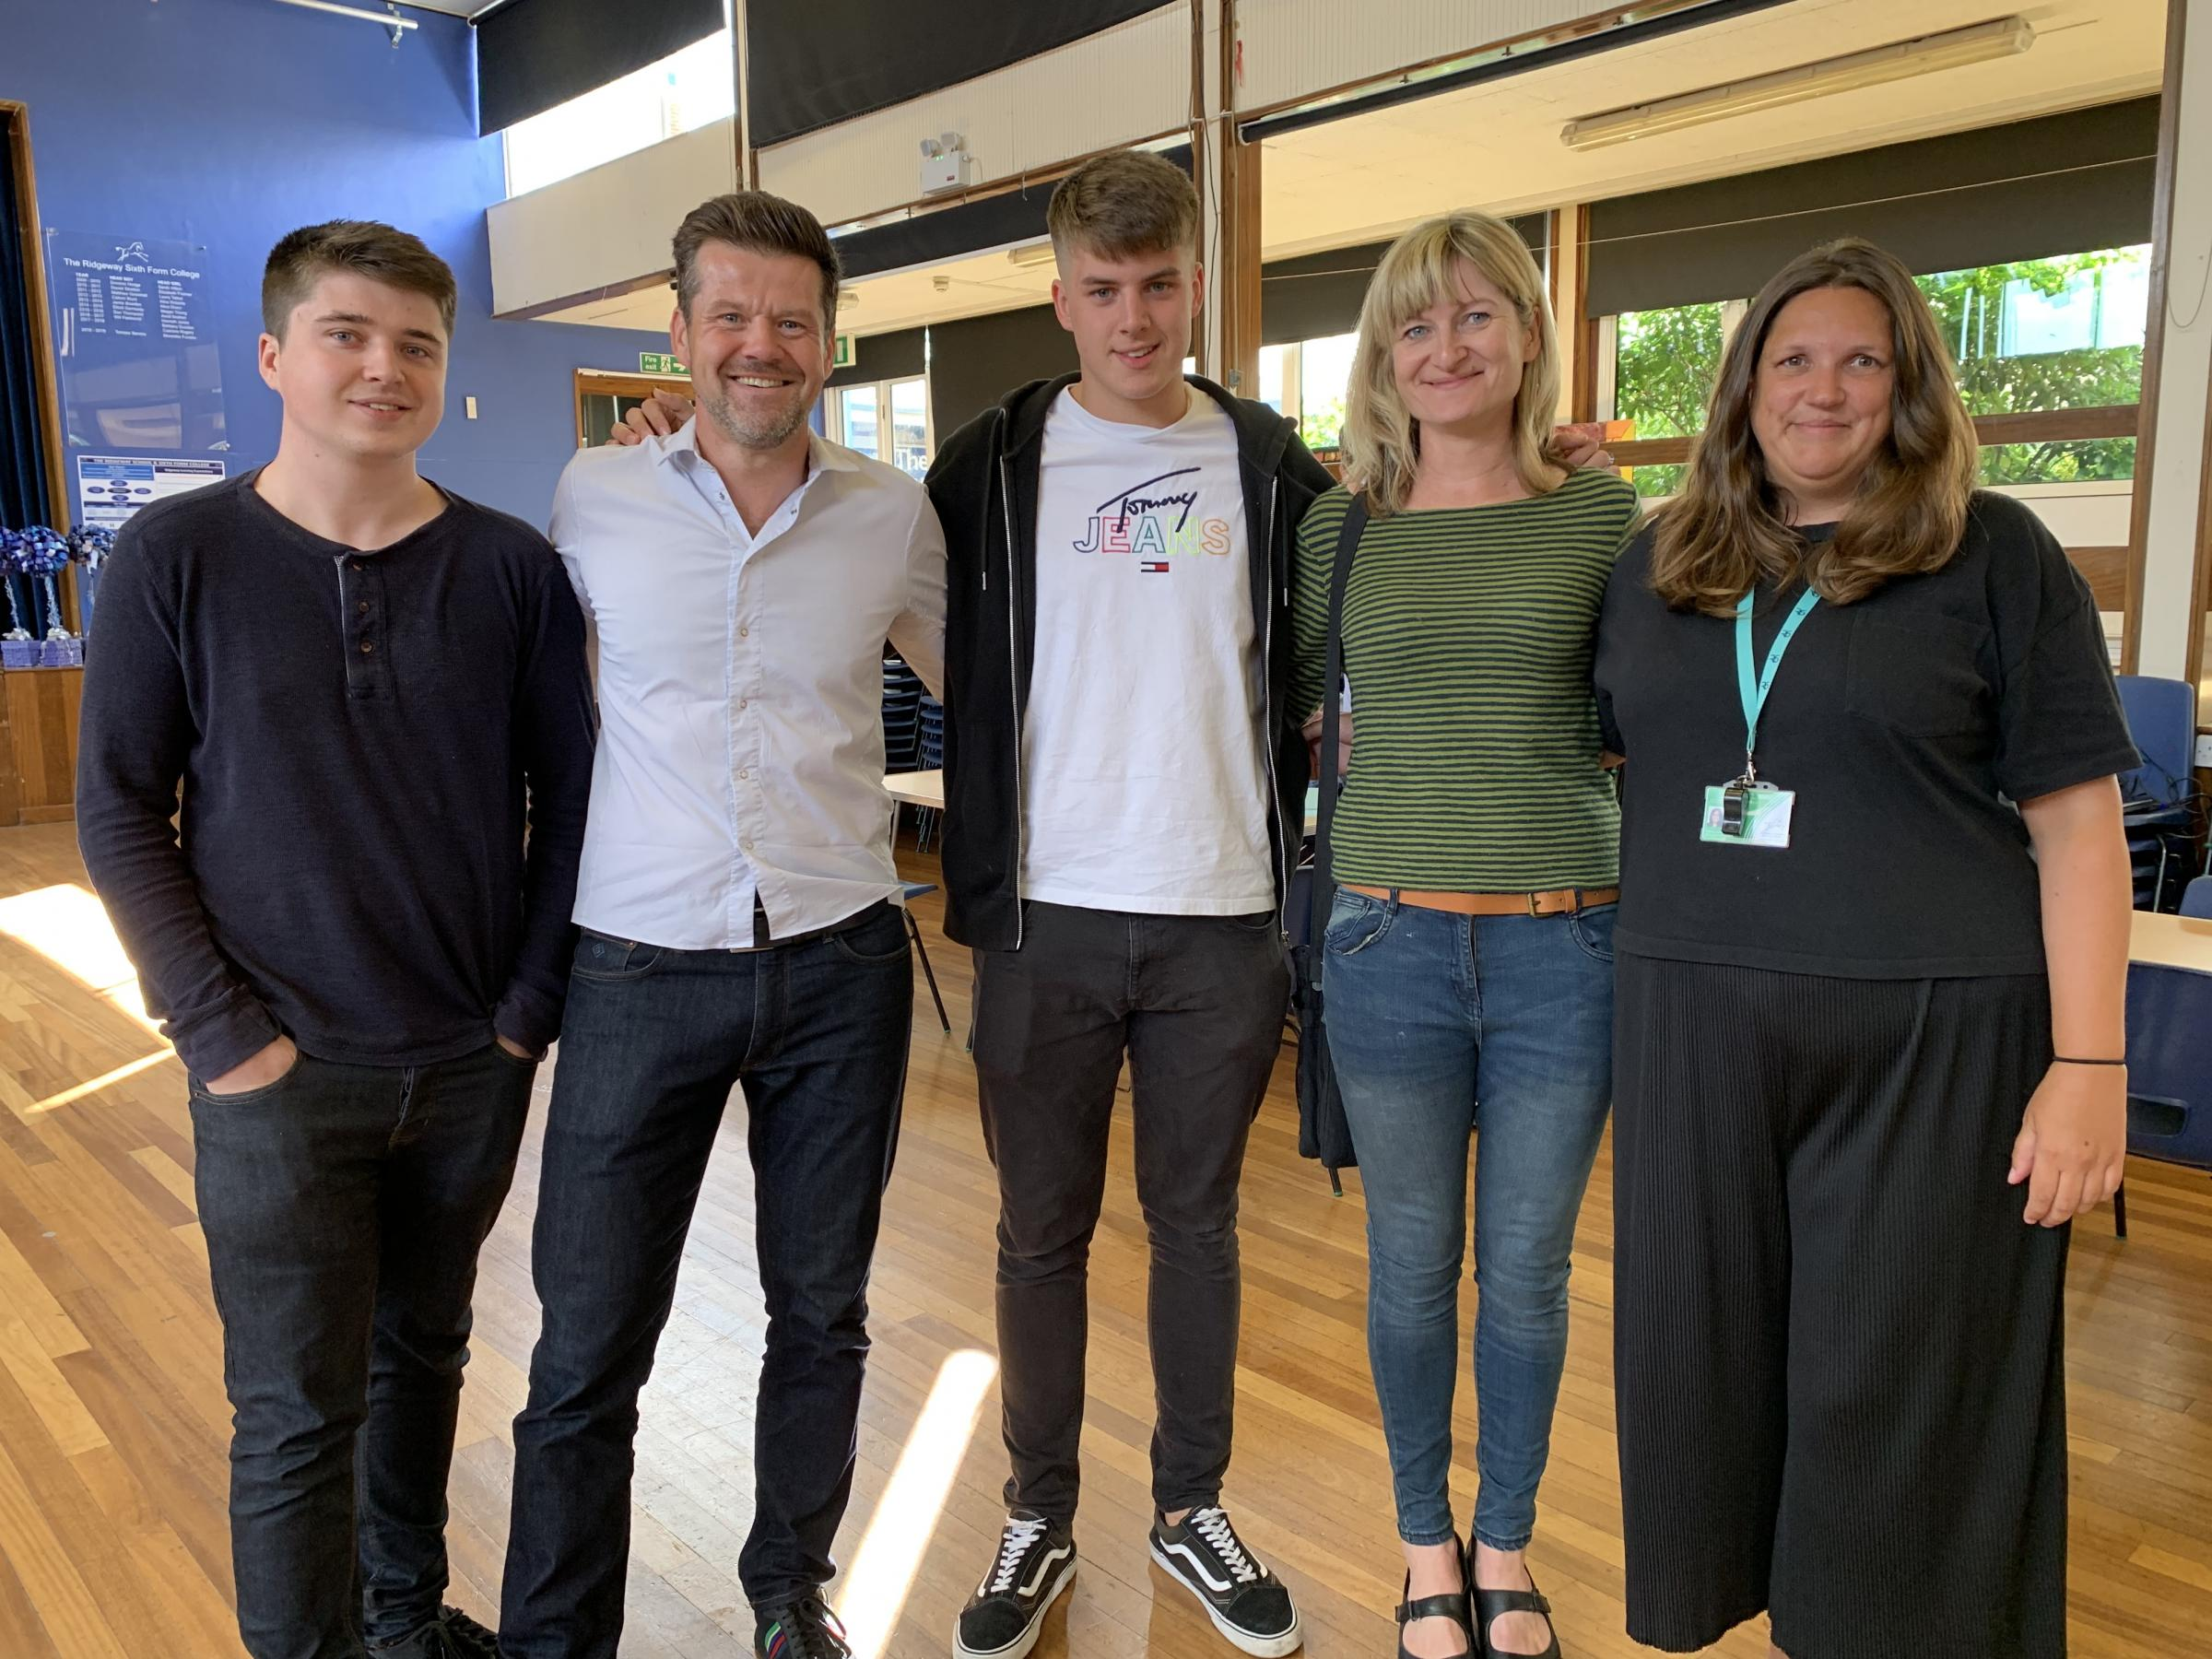 Joe celebrates exam success after struggling with ADHD during sixth form studies